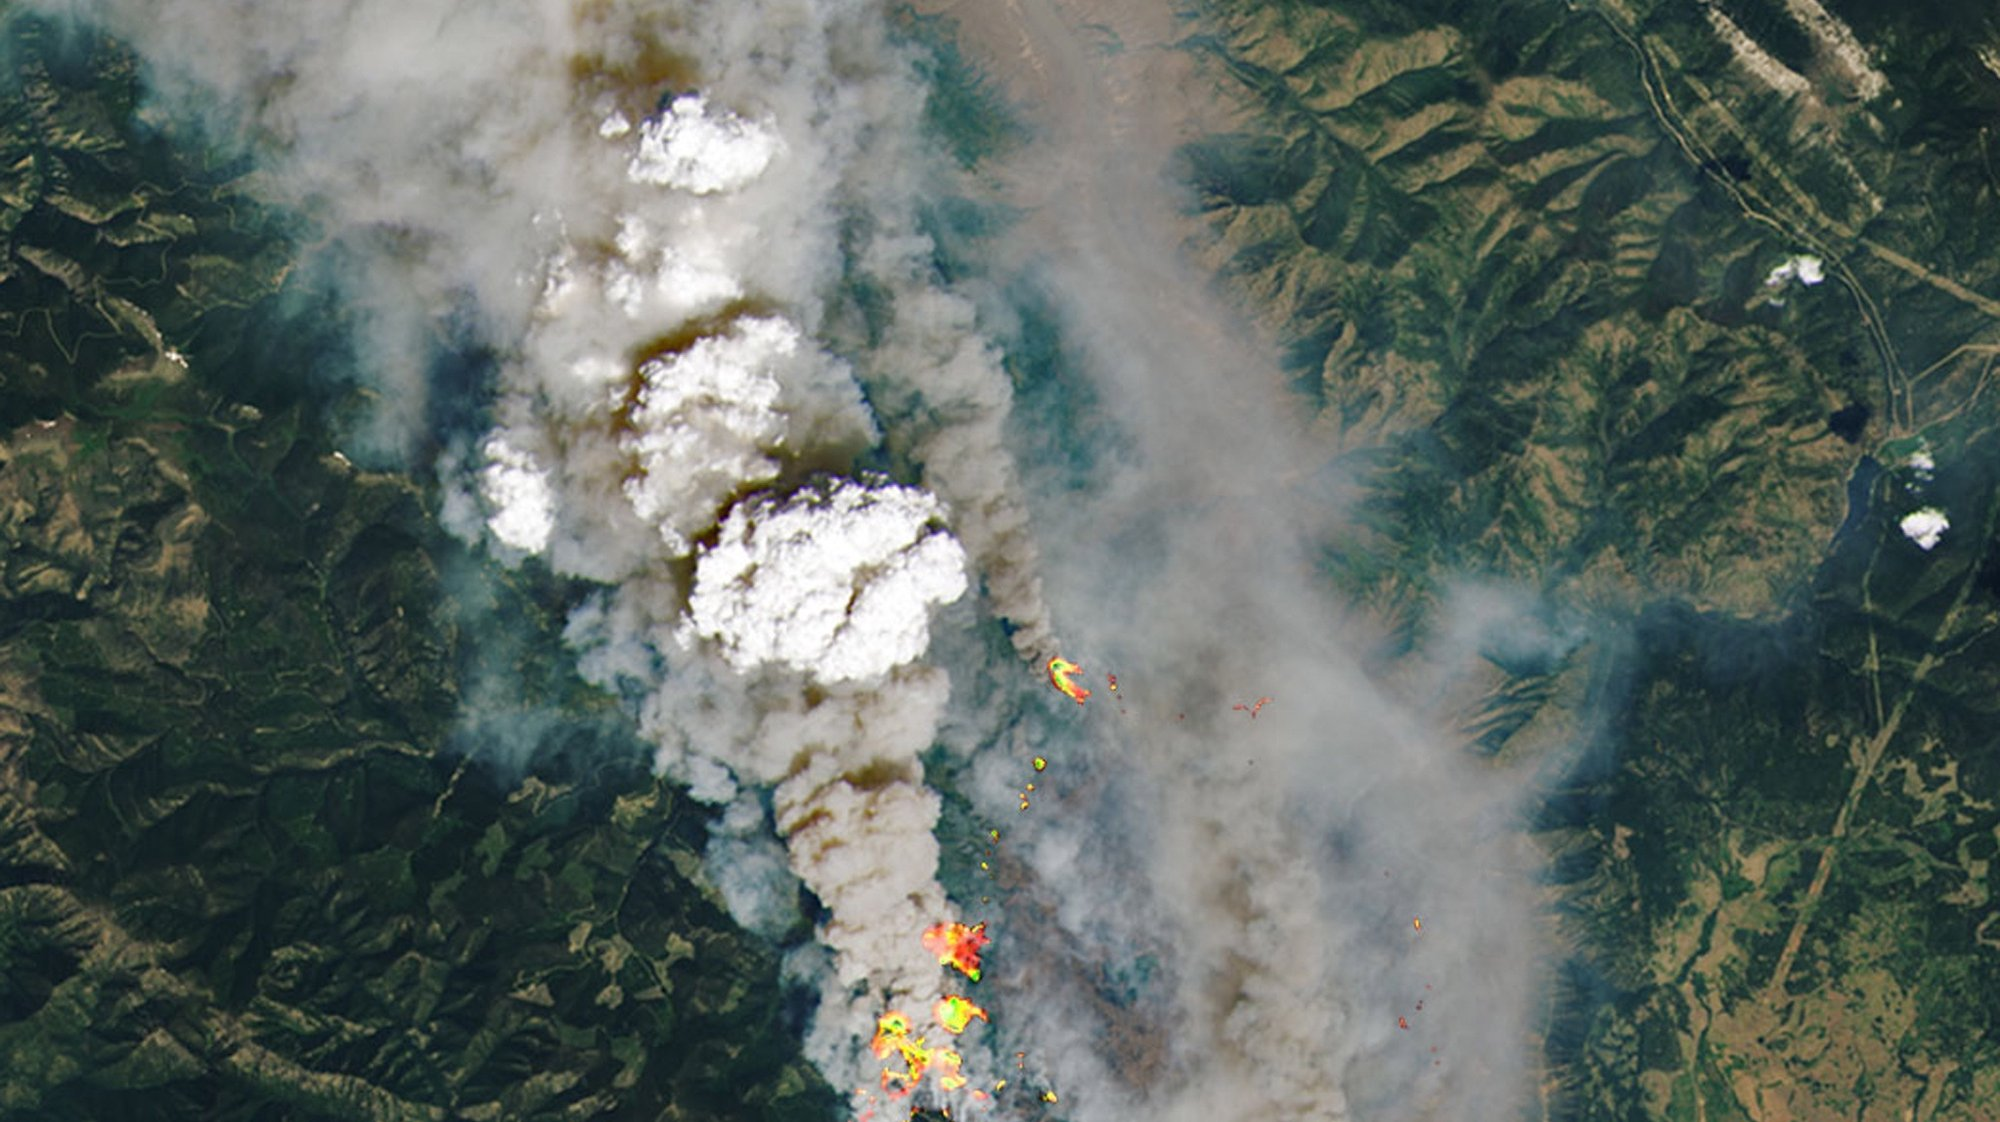 epa09316834 A handout satellite image made available by the National Aeronautics and Space Administration (NASA) shows a detailed view of the McKay Creek fire, some 23km north of the community of Lillooet, British Columbia (BC), Canada, 30 June 2021 (issued 02 July 2021). This natural-color satellite image was overlaid at source with shortwave-infrared light to highlight the active fire. More than 40 wildfires were burning across the Canadian province by the end of June 2021, according to data released by the BC Wildfire Service. A heatwave has hit Canada and north-west USA sending temperatures to dangerous highs.  EPA/NASA HANDOUT  HANDOUT EDITORIAL USE ONLY/NO SALES